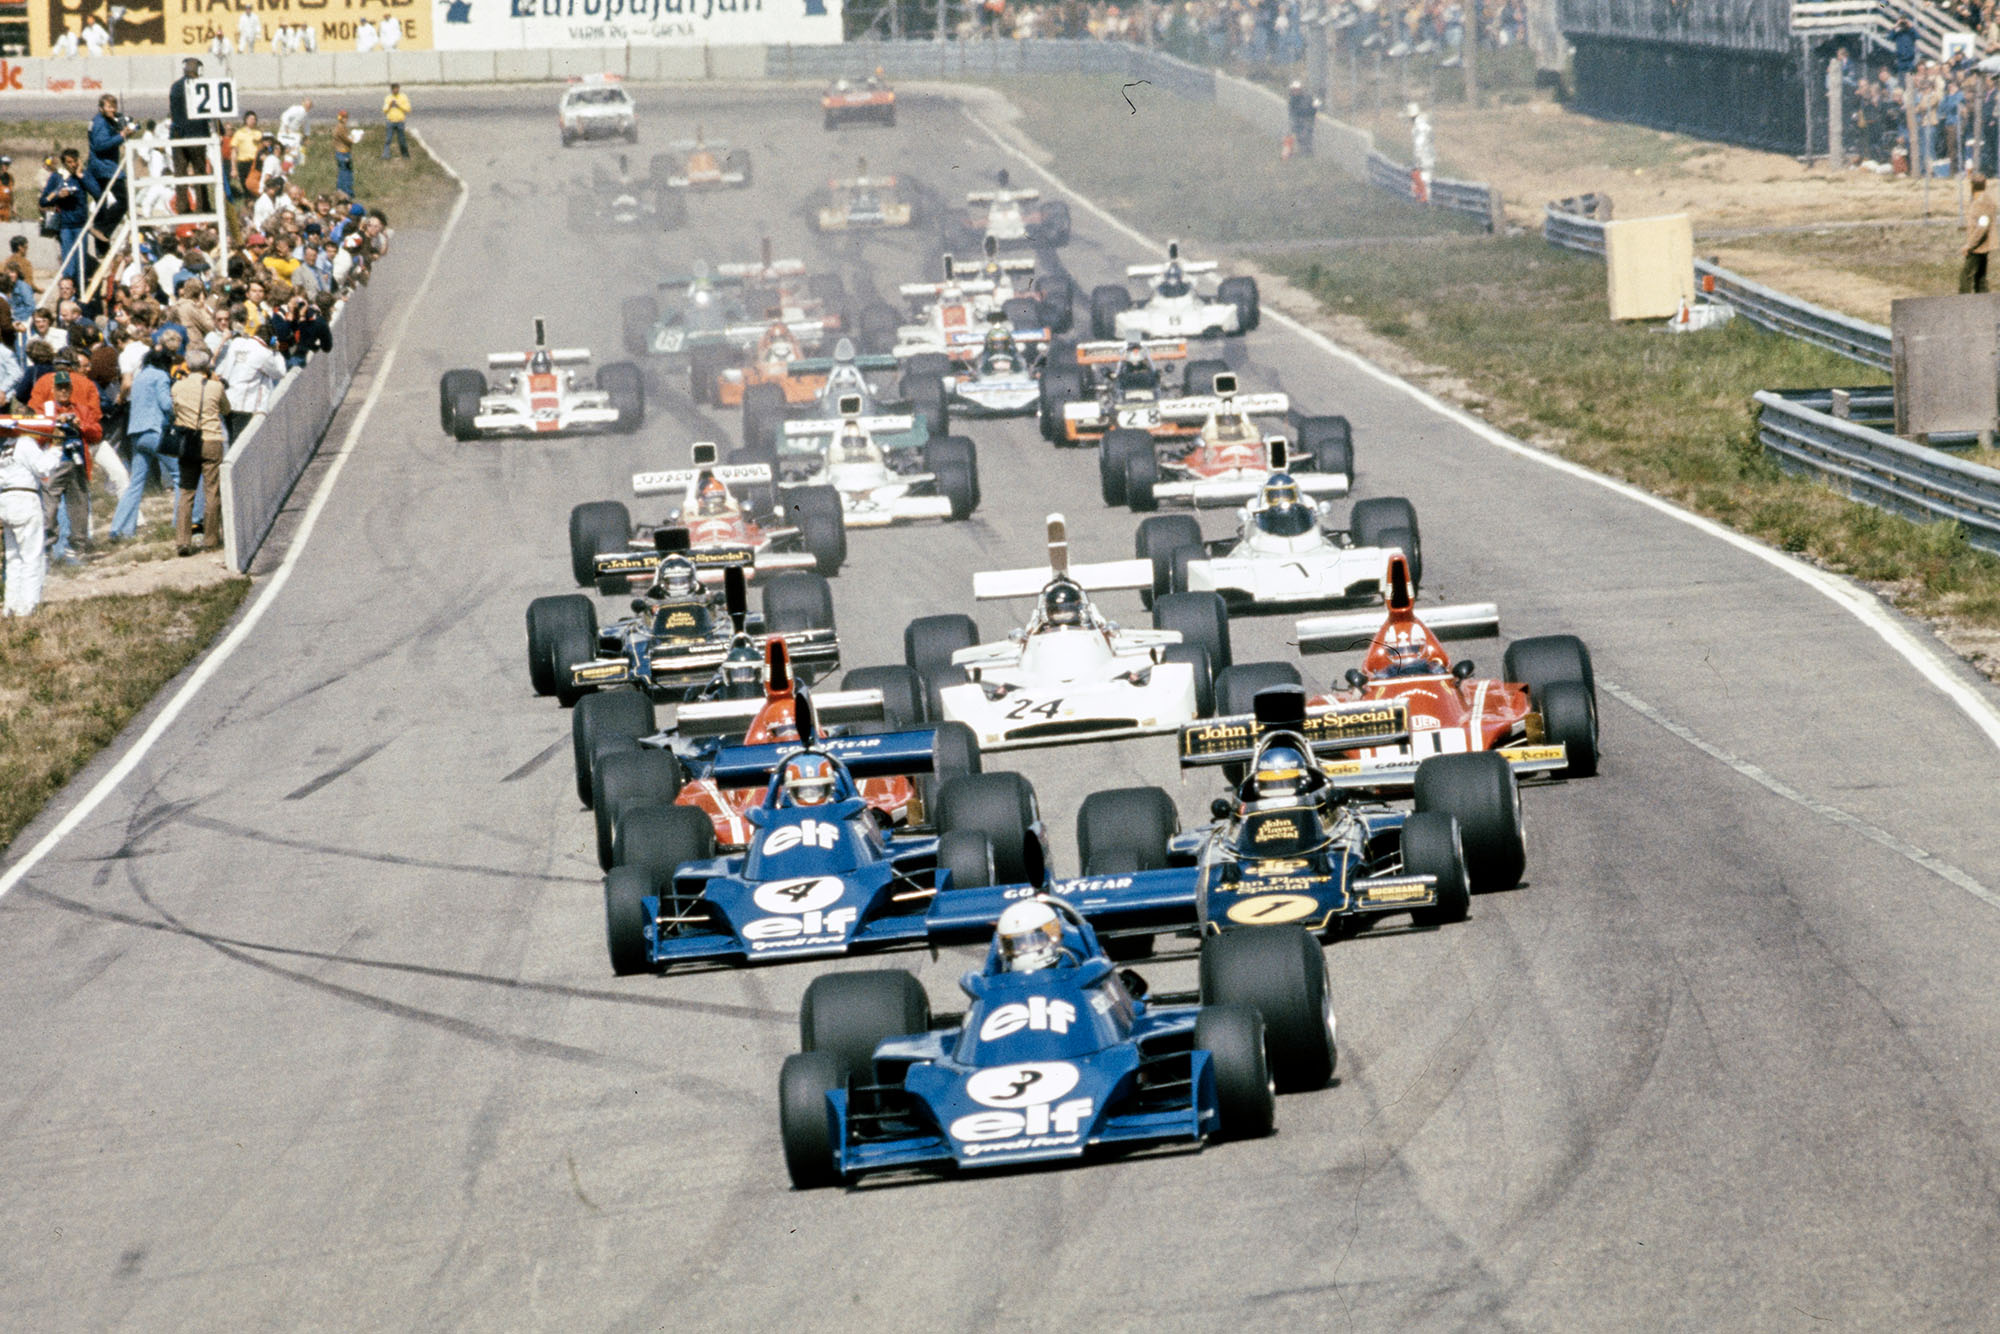 Jody Scheckter (Tyrrell) leads into the first corner of the Spanish Grand Prix.